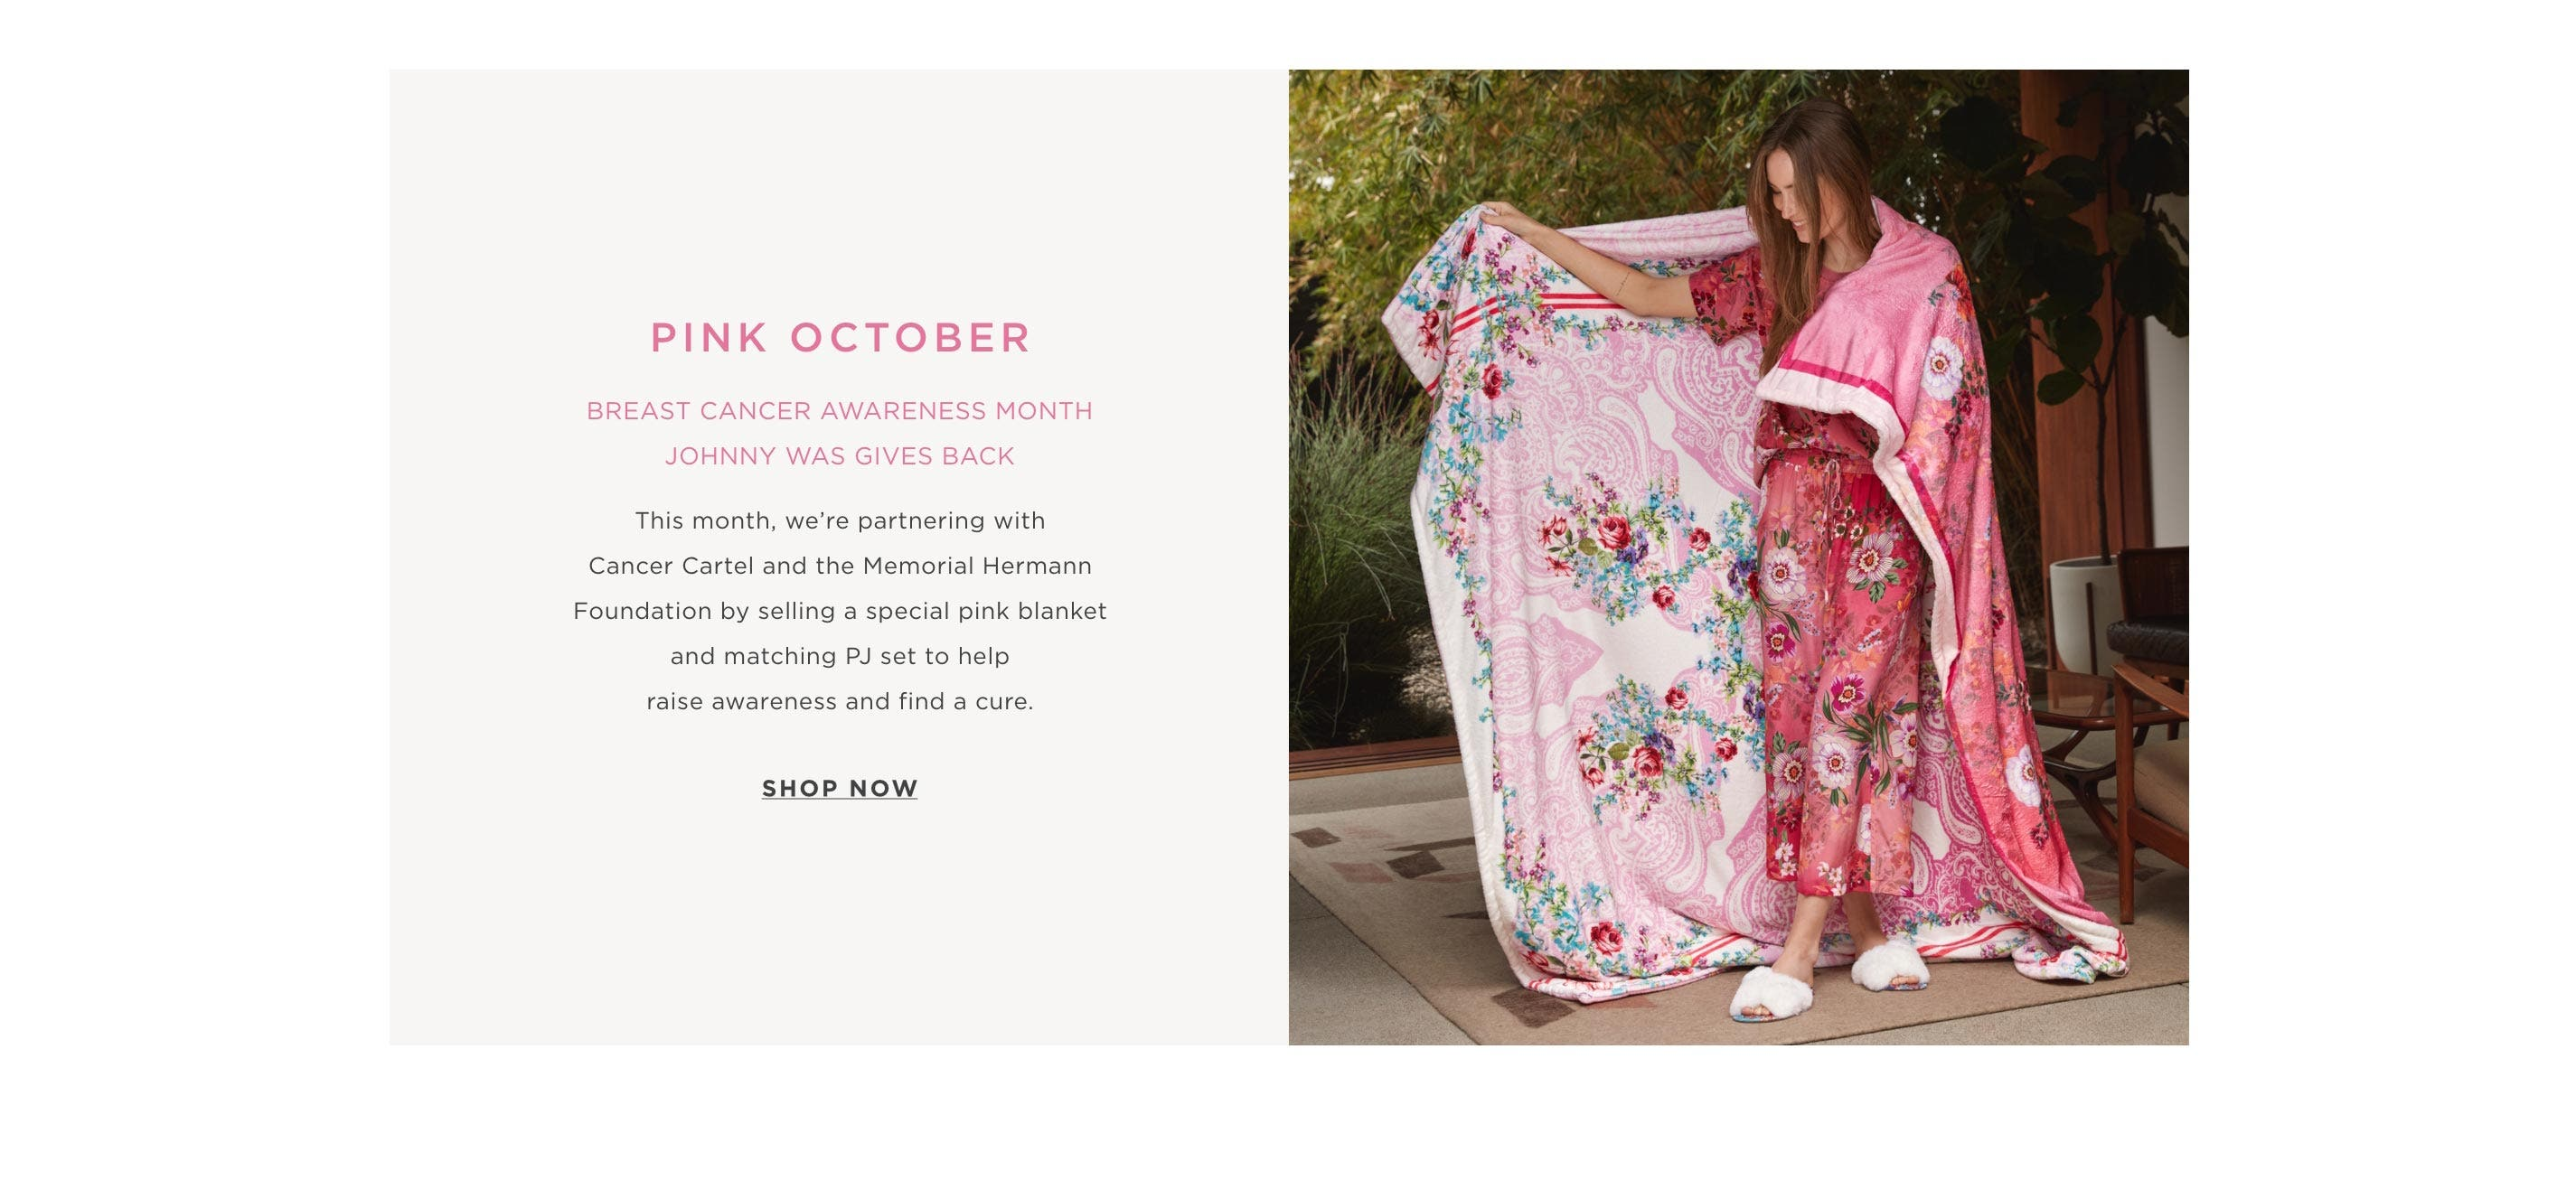 Pink October – Breast Cancer Awareness Month Johnny Was Gives Back This month, we're partnering with Cancer Cartel and the Memorial Hermann Foundation by selling a special pink blanket and matching PJ set to help raise awareness and find a cute. – Shop No